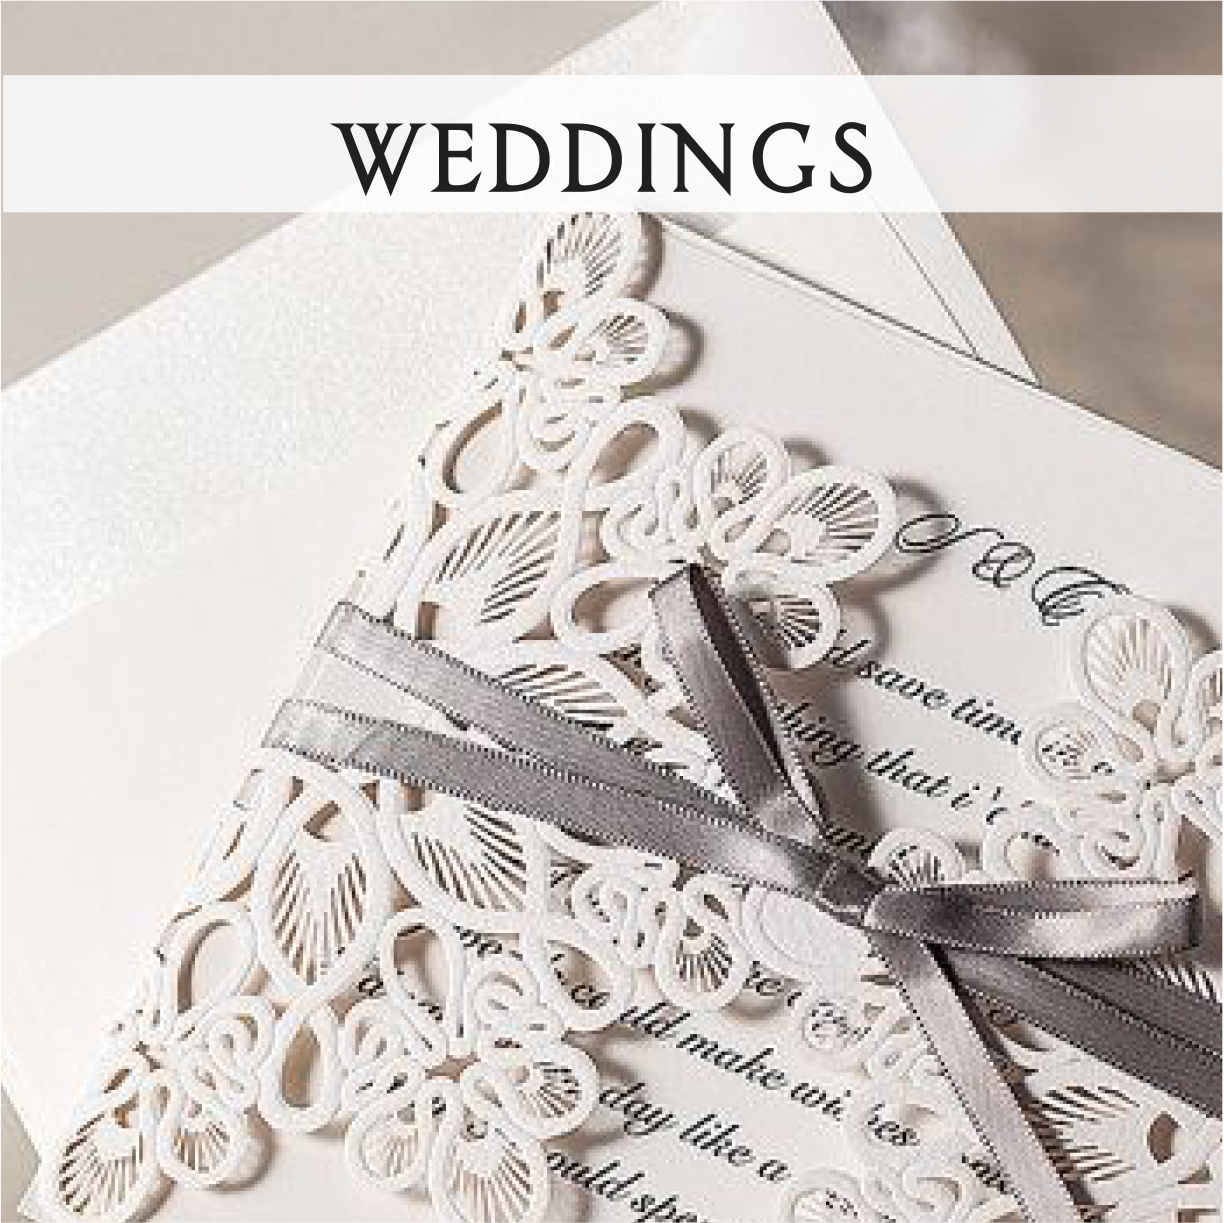 weddings-home-page-best-custom-wedding-invitations-letter-perfect.png